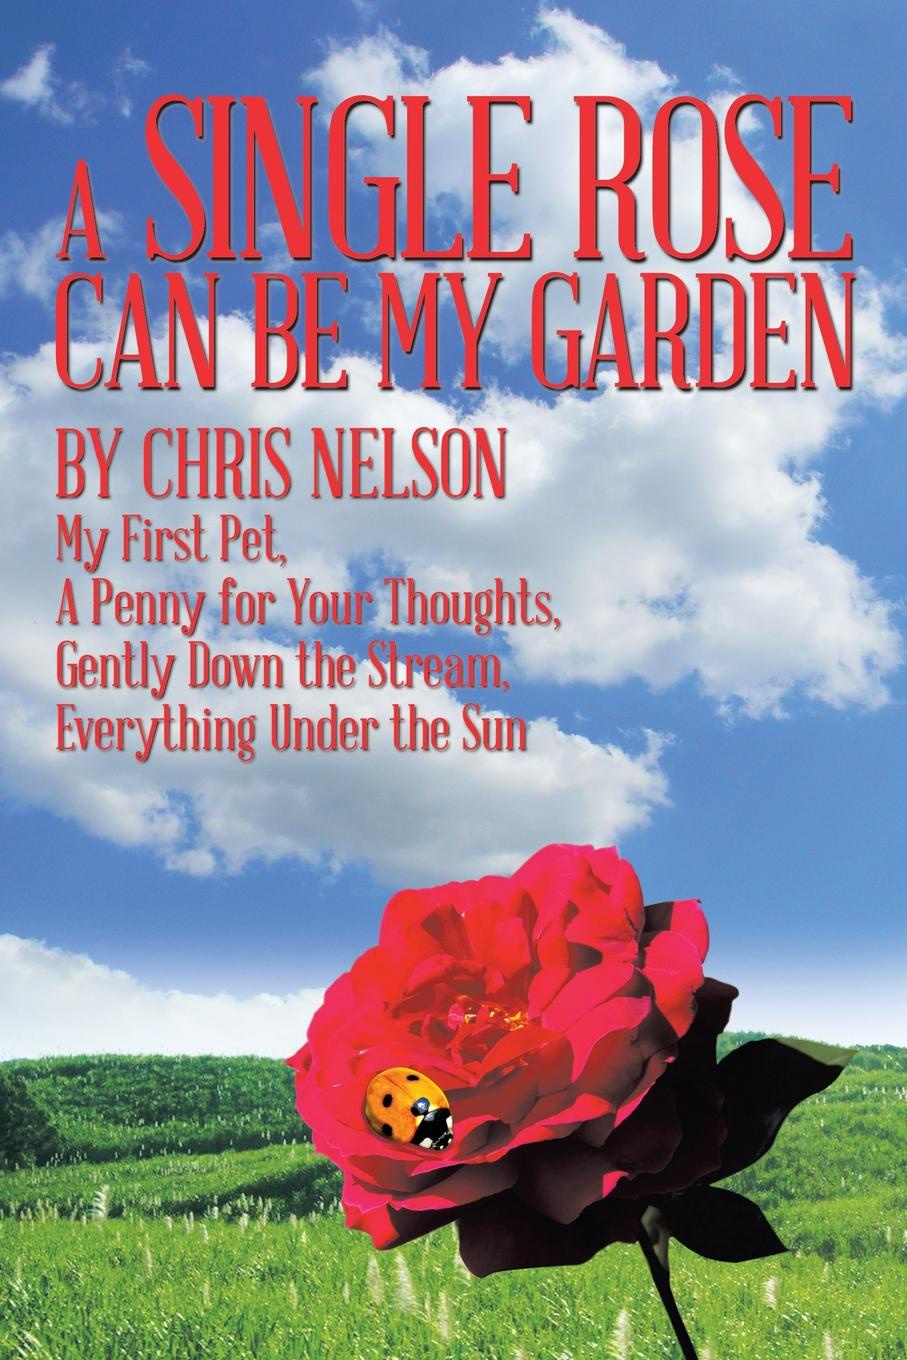 Chris Nelson A Single Rose Can Be My Garden. My First Pet, a Penny for Your Thoughts, Gently Down the Stream, Everything Under the Sun secrets under the sun